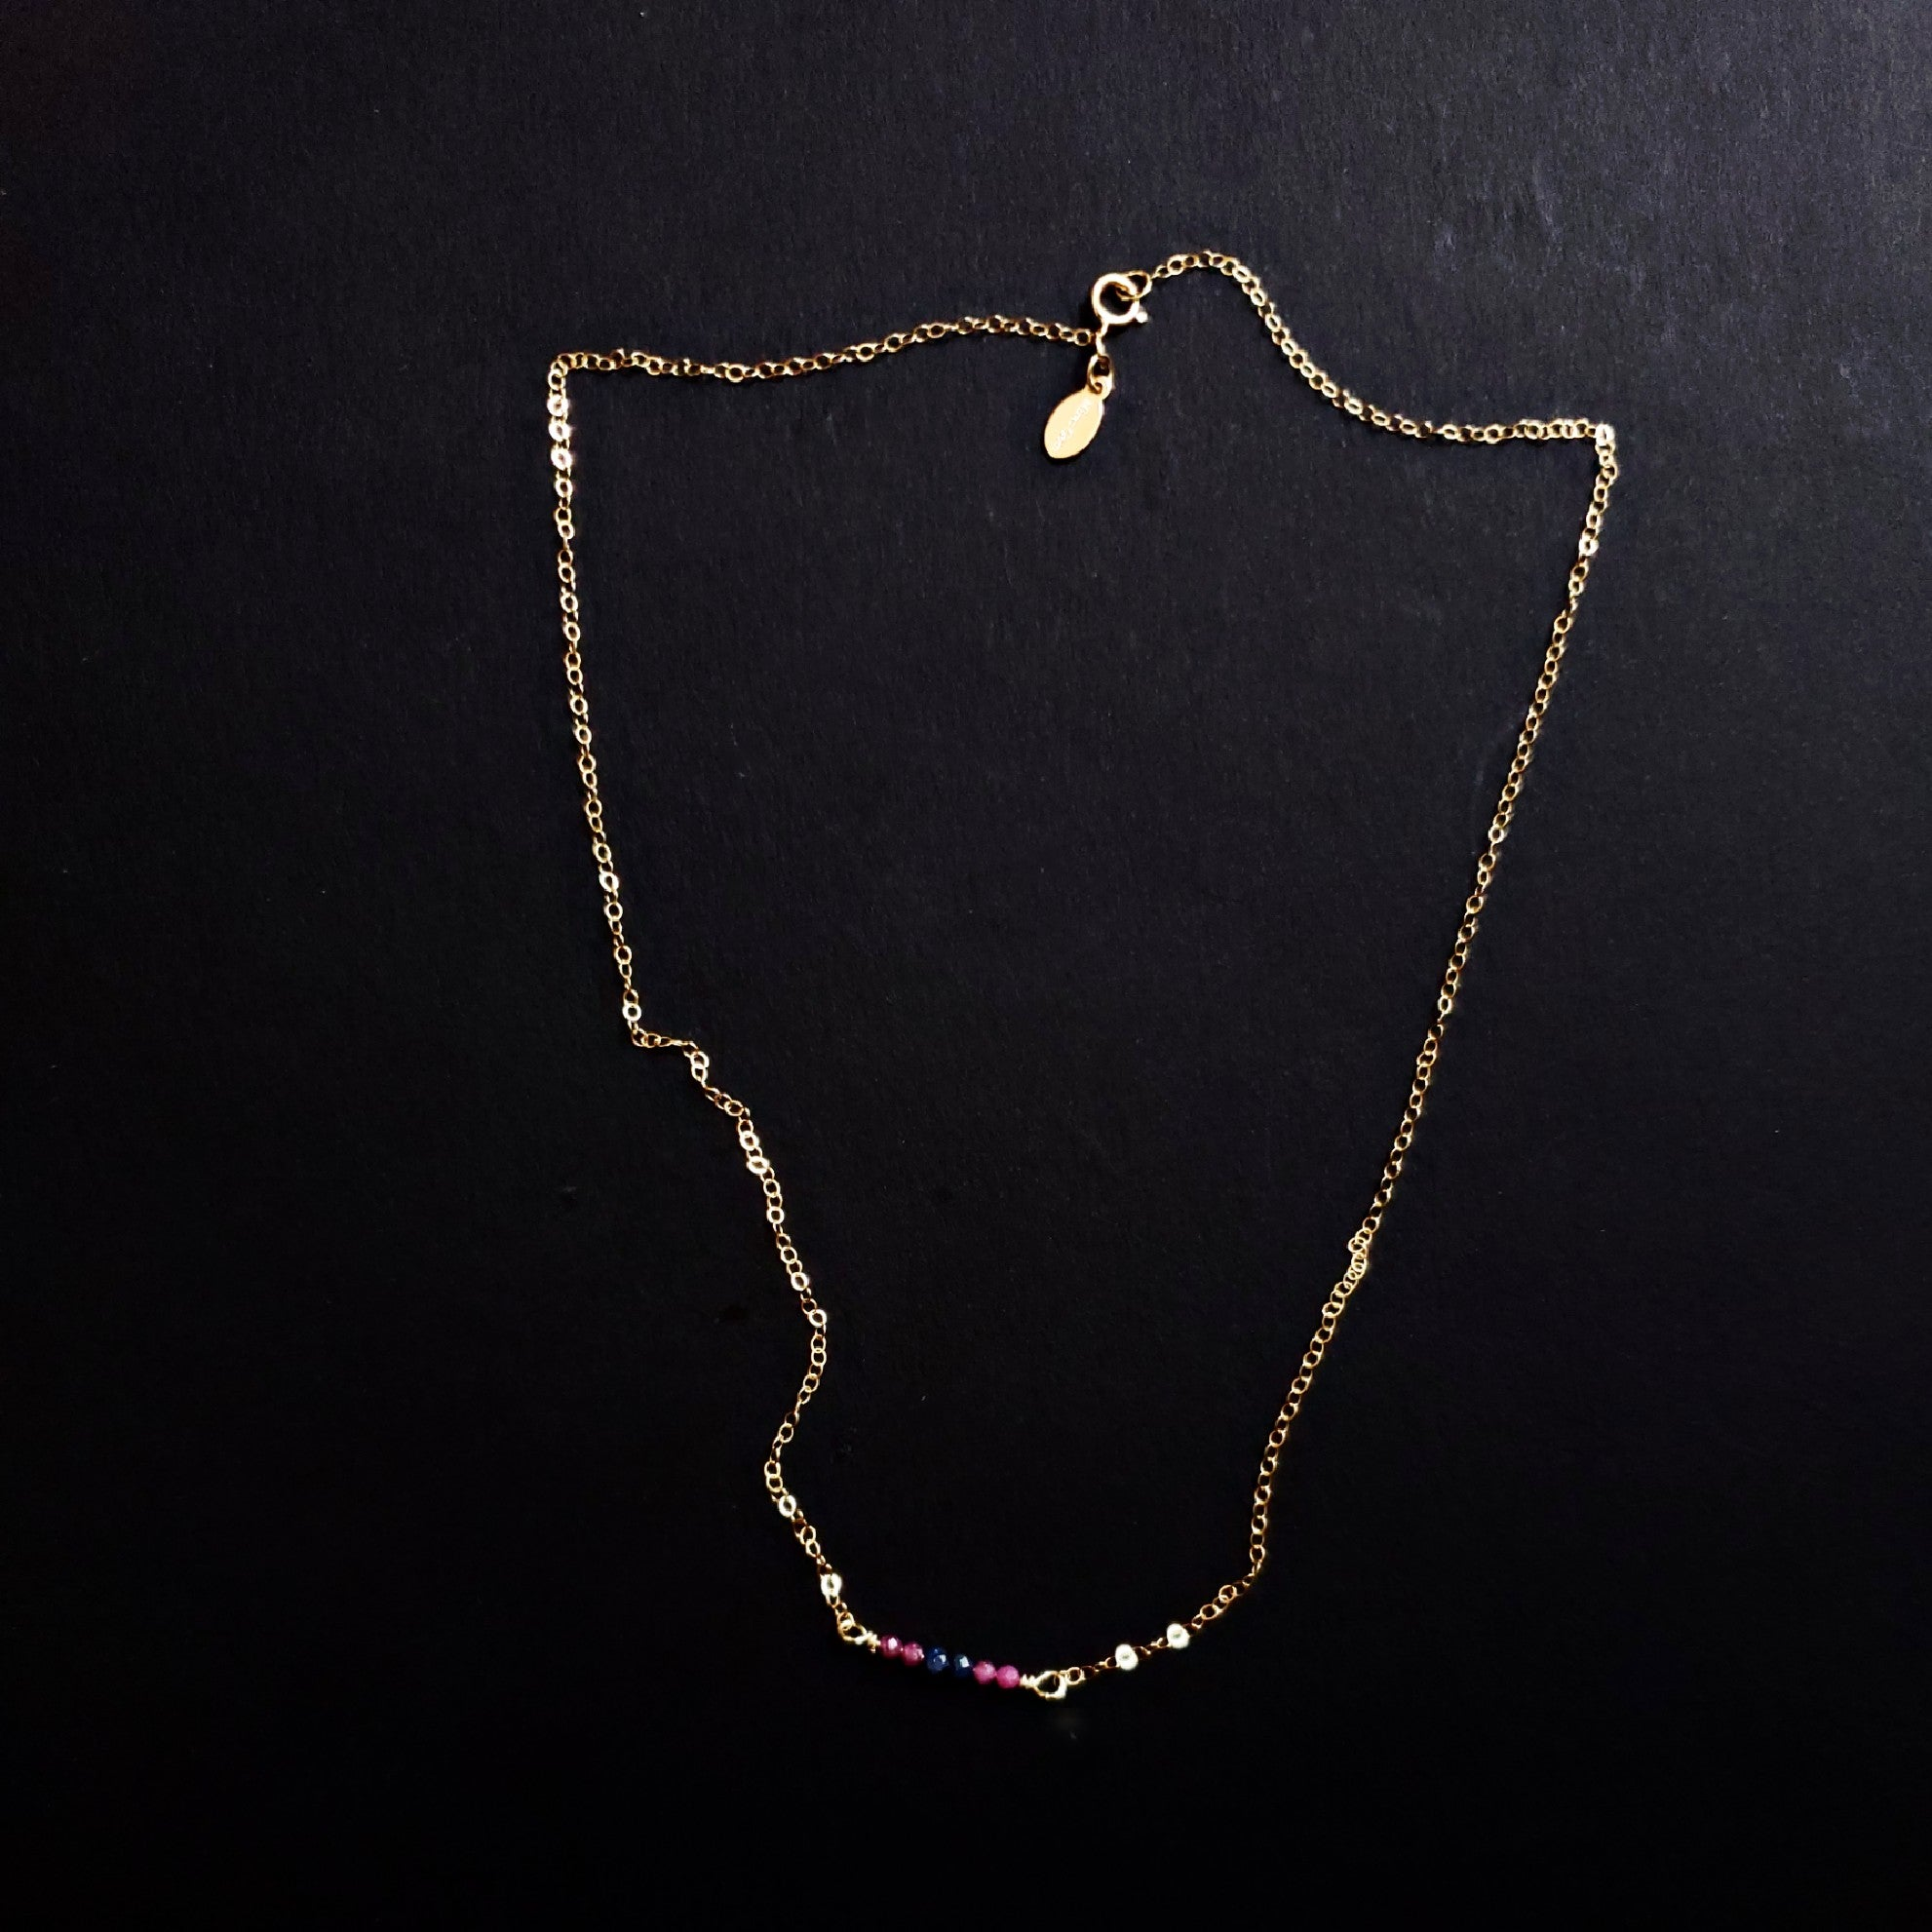 Ruby and Sapphire simple necklace